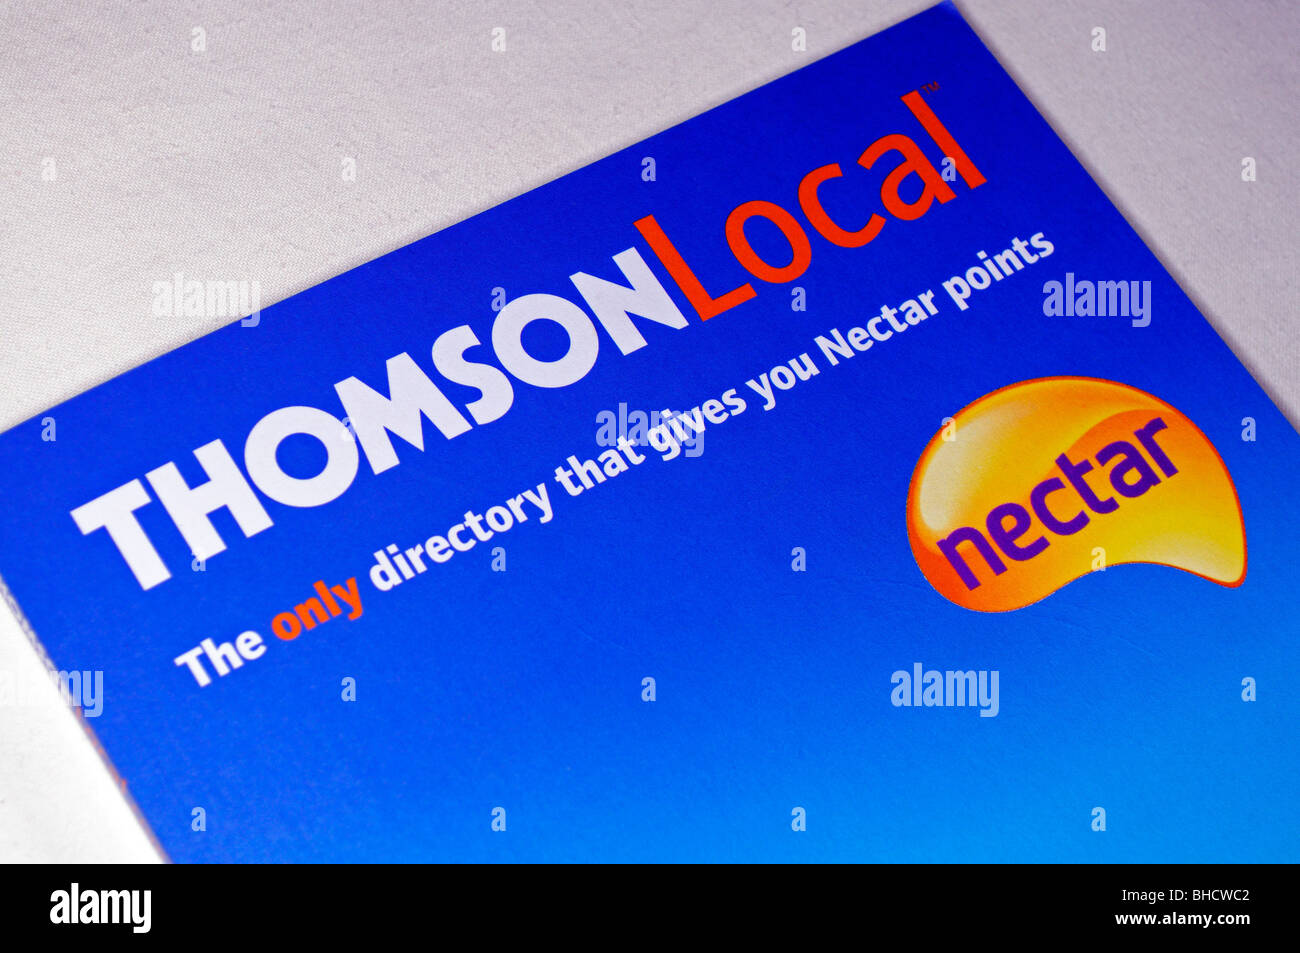 The Thompson local telephone directory - Stock Image